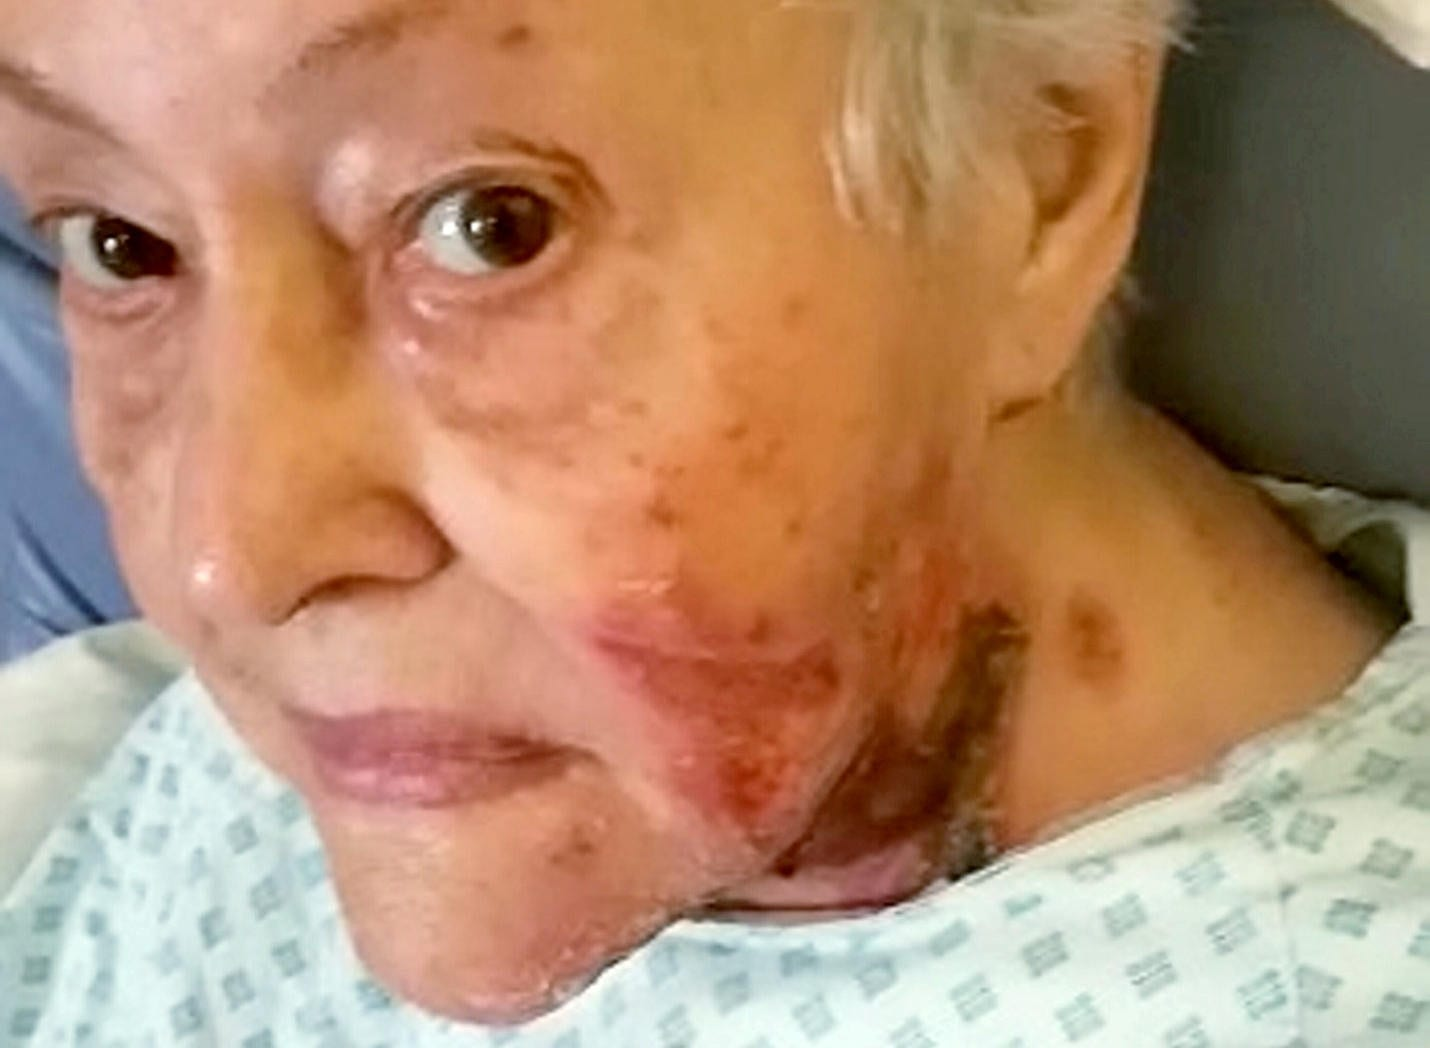 80-Year-Old Burned After Cigarette Tip Fell And Ignited Her Clothing – Amid Claims Negligent Carers Are To Blame